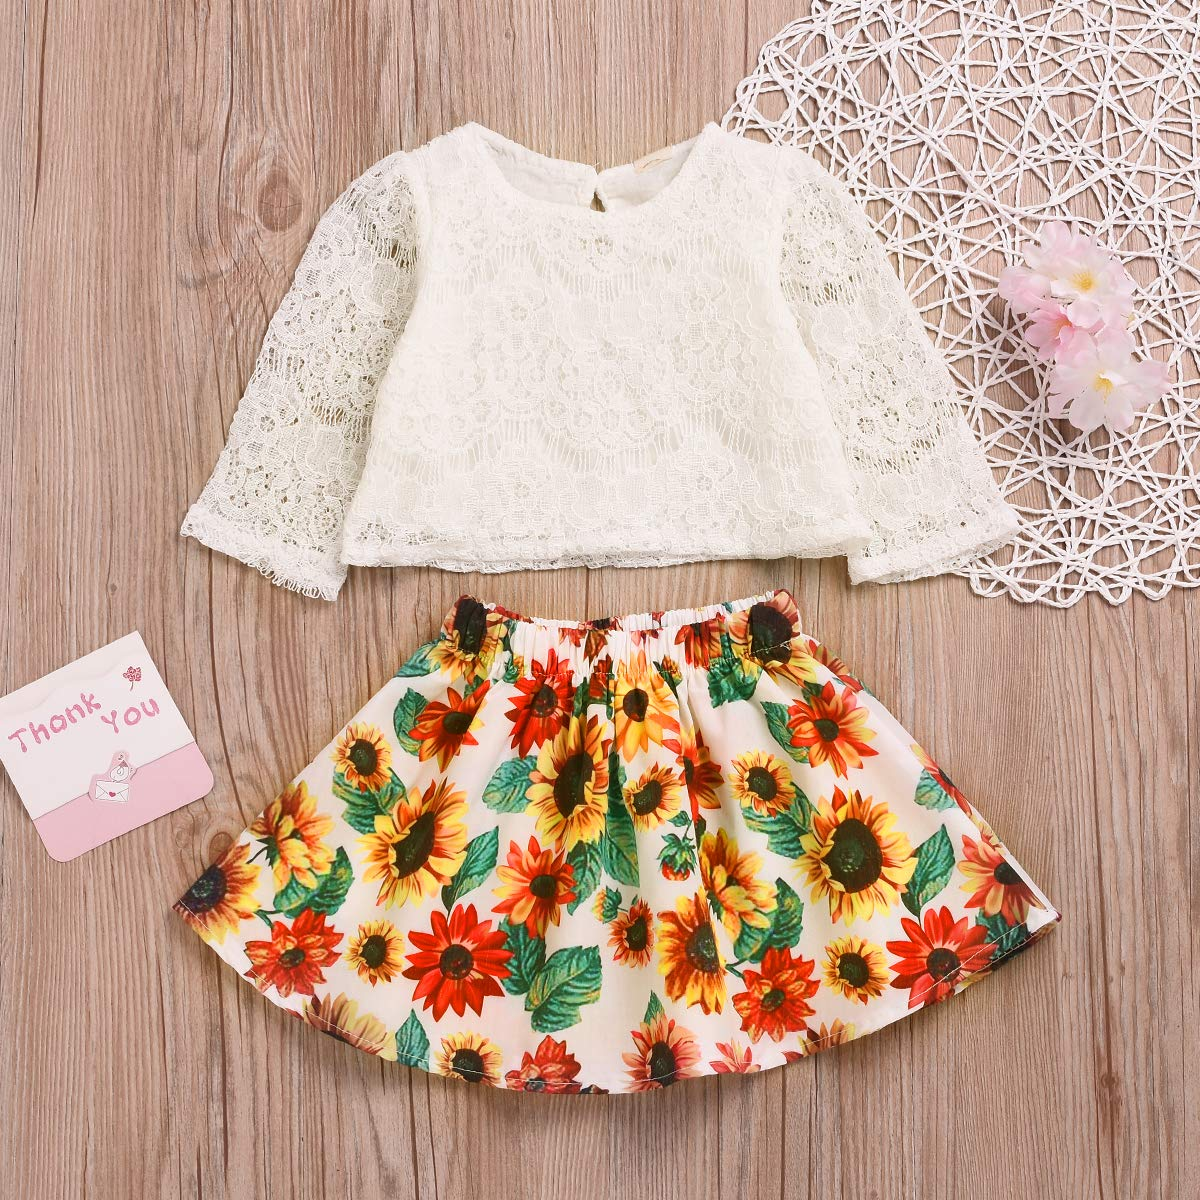 yiquanquan Toddler Kid Baby Girls Lace Tops T-Shirt Sunflower Mini Skirt Dress Sundress Outfit Set 2Pcs